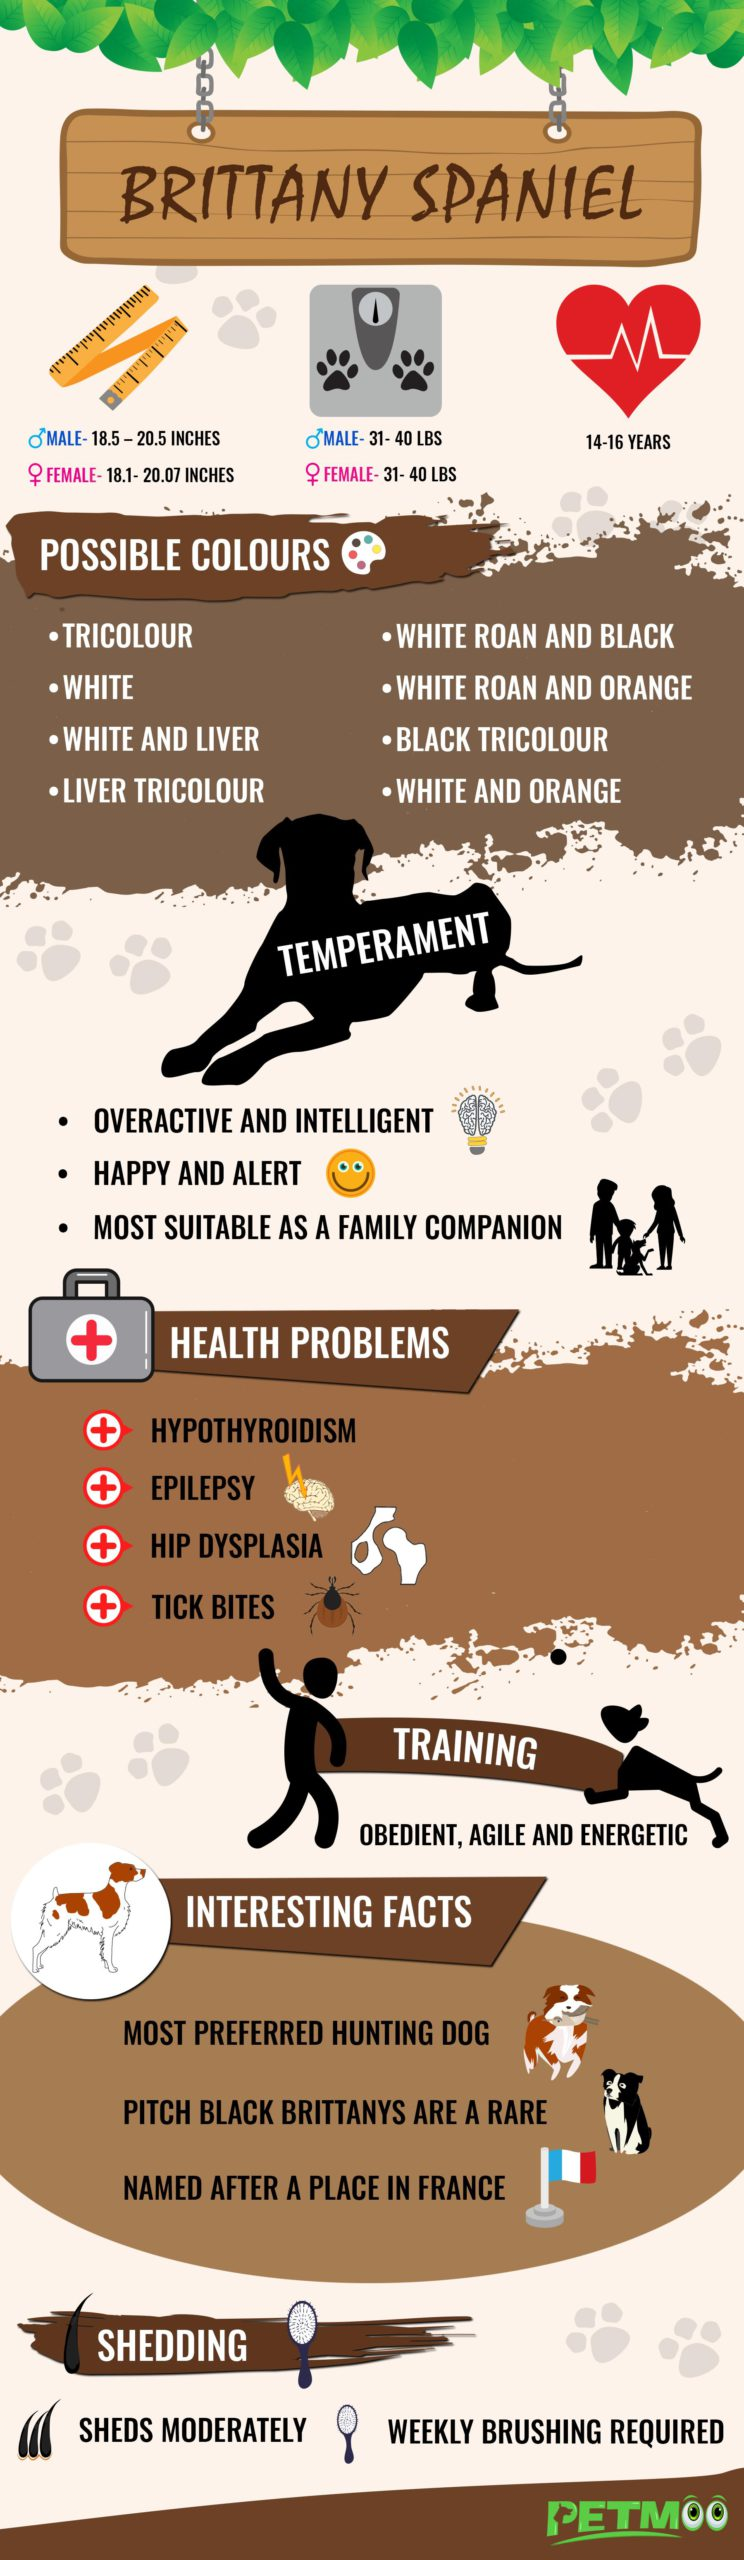 Brittany Spaniel Infographic